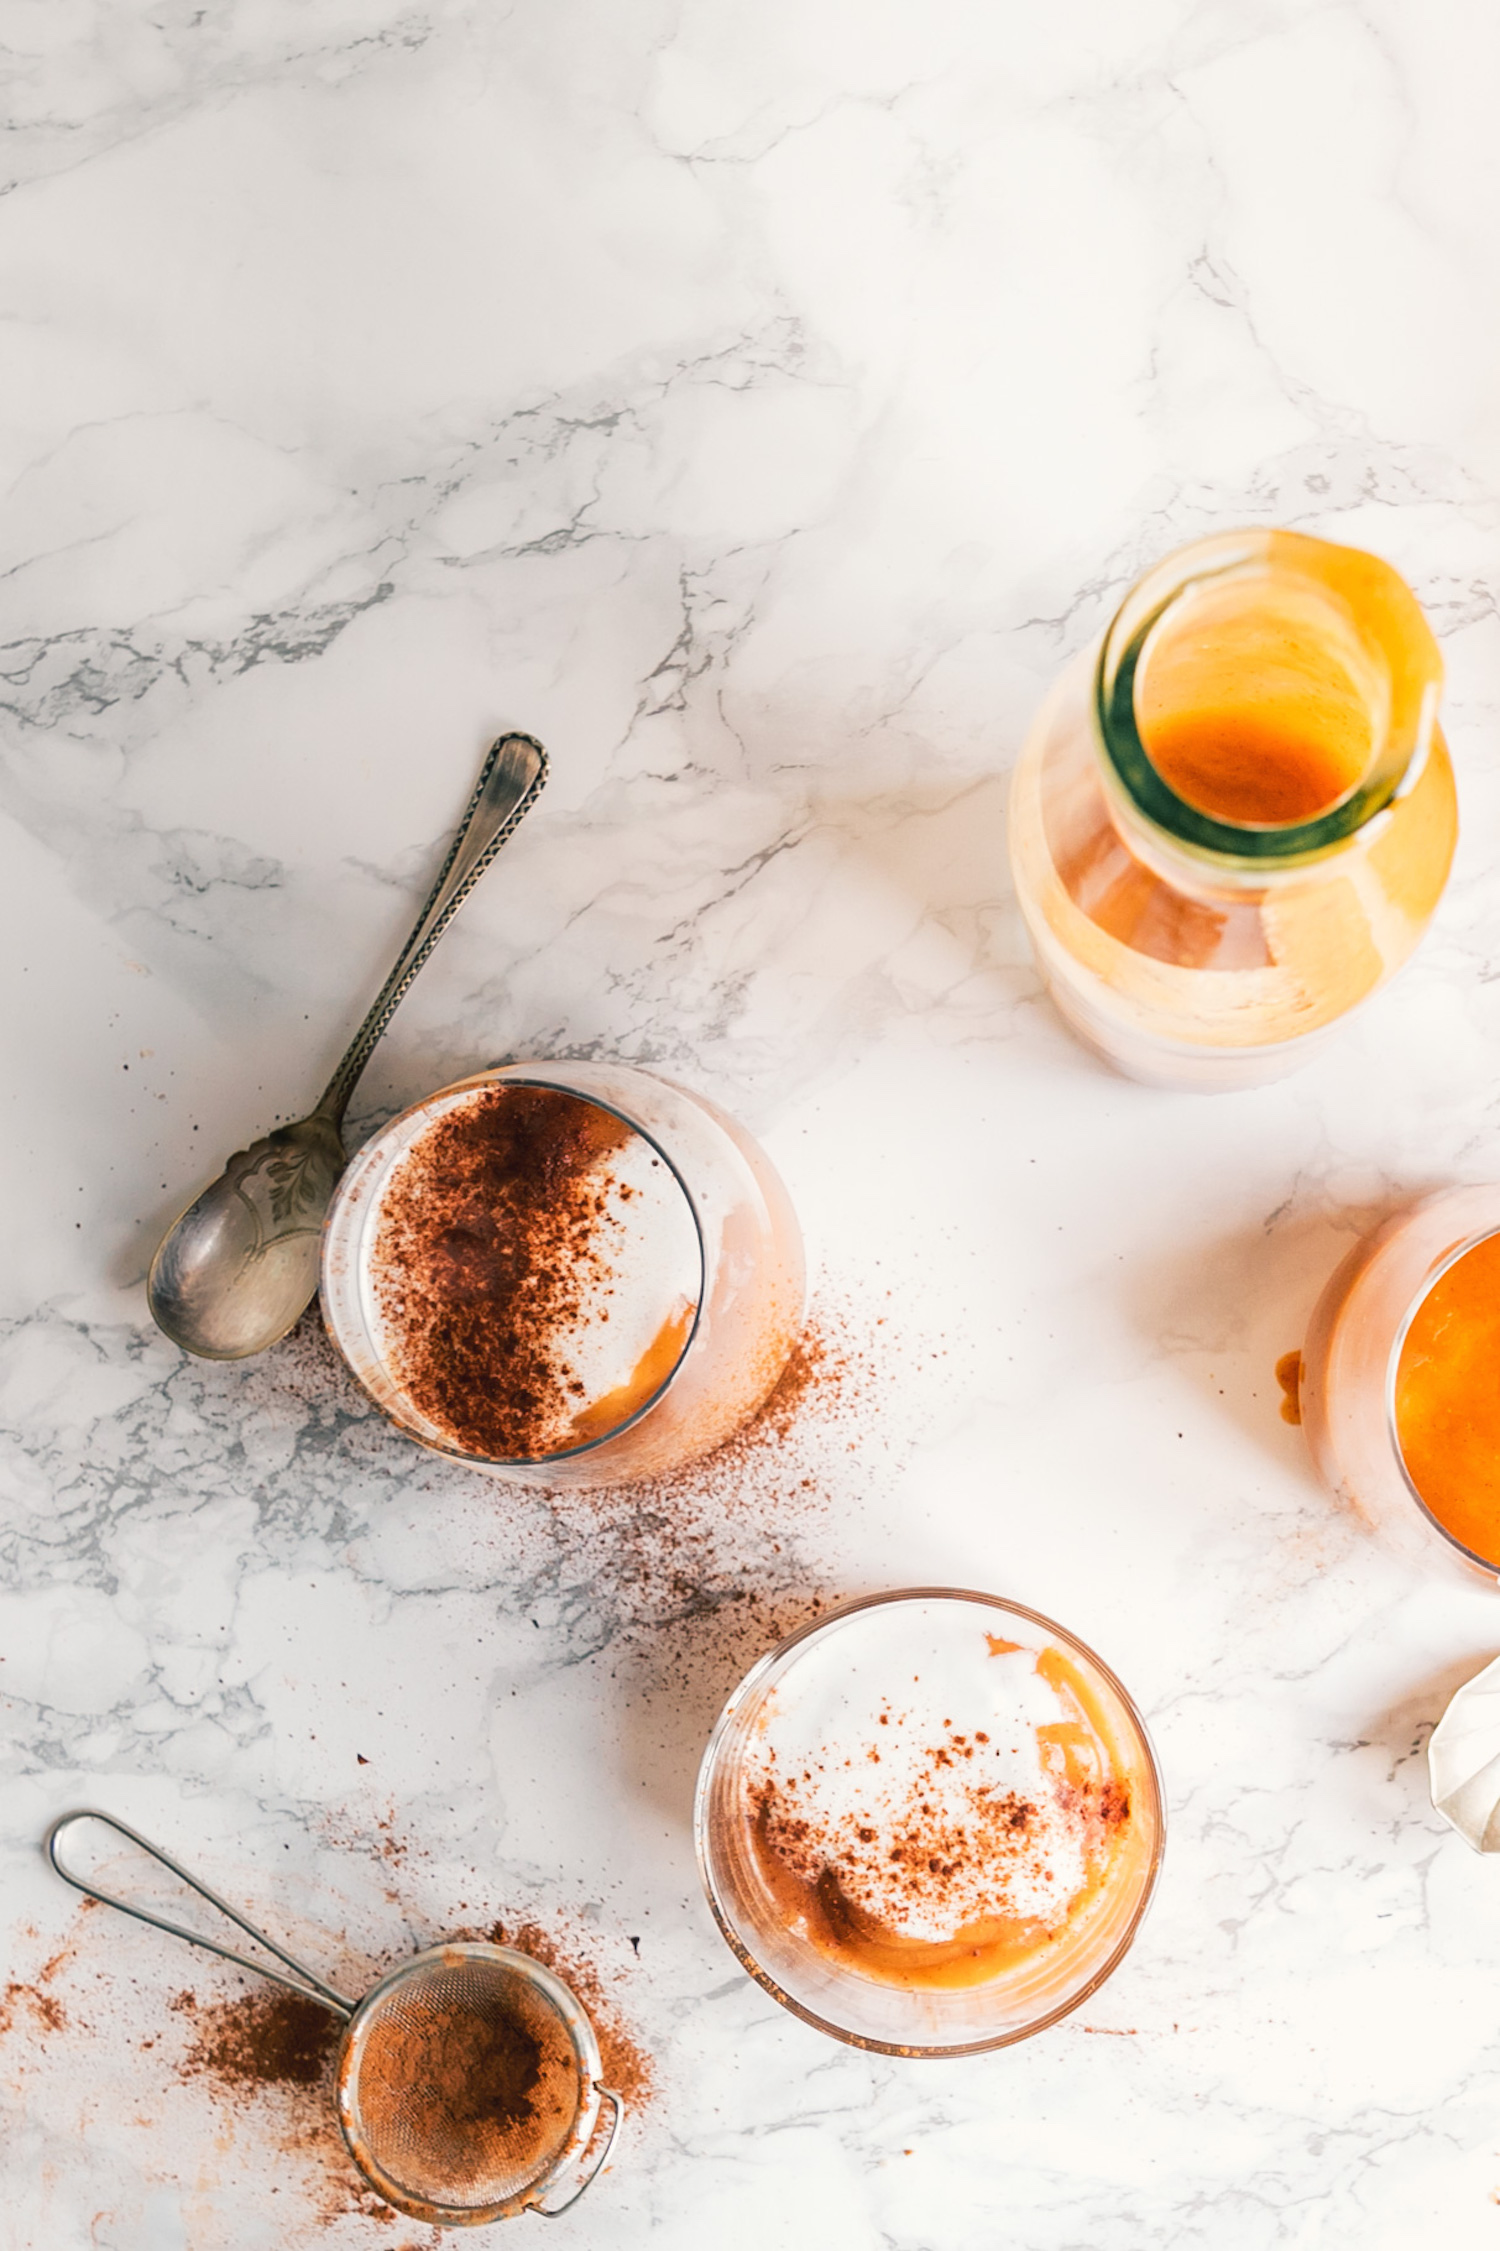 Spiced Persimmon & Roasted Apple Smoothie by black.white.vivid